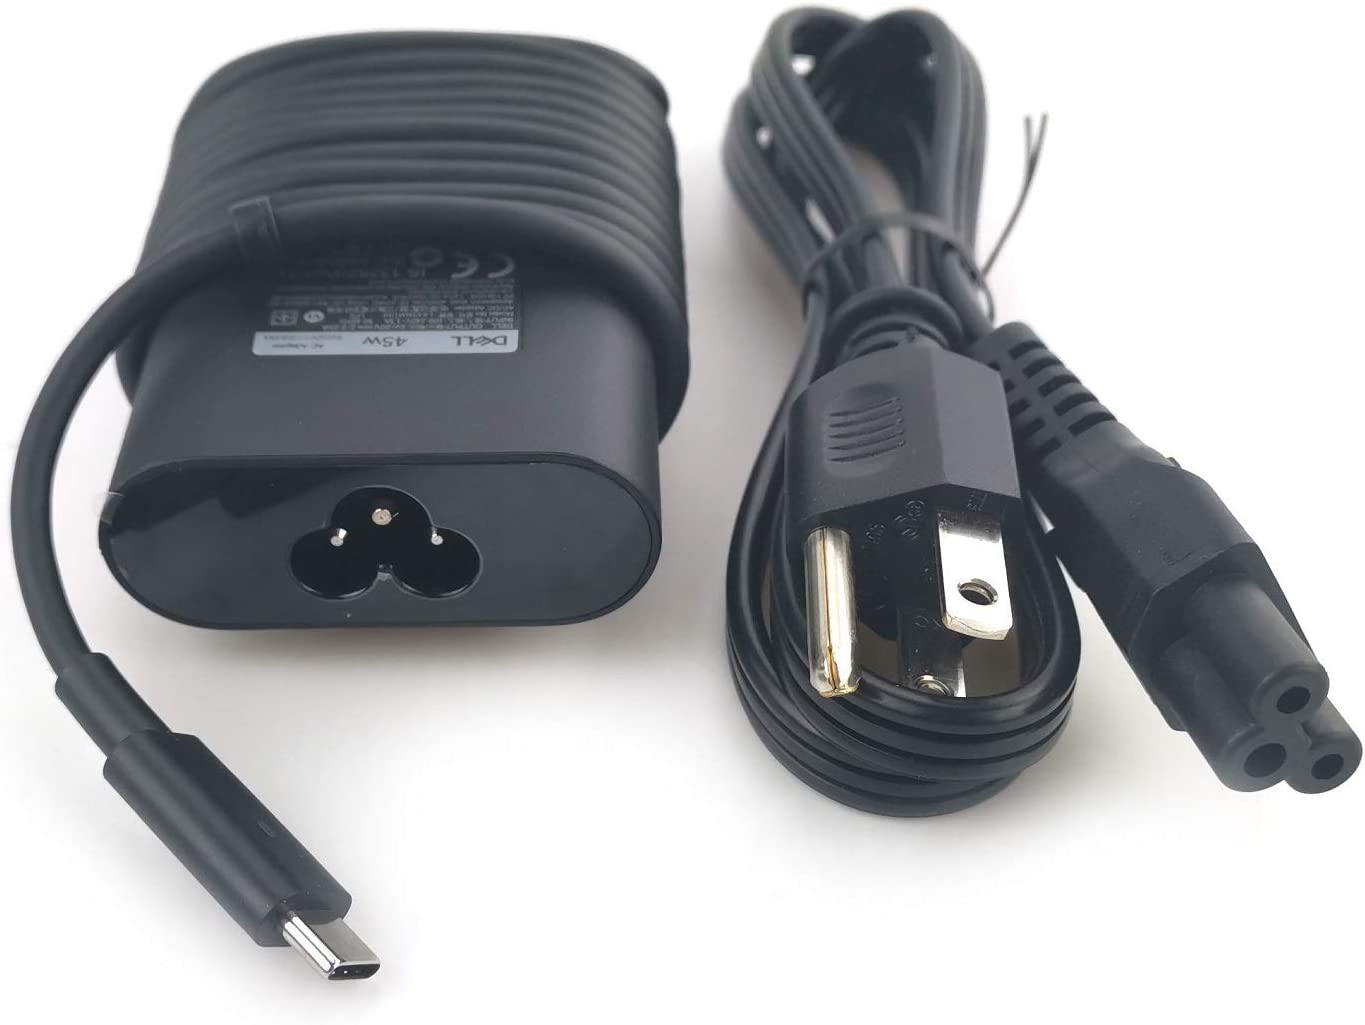 New Dell Laptop Charger 45W watt USB Type C (USB-C) AC Power Adapter Include Power Cord for Dell XPS 13 9365 9370 9380,Latitude 7275 7370 5175 5285 5290-2in1 7390-2in1,LA45NM150,0HDCY5